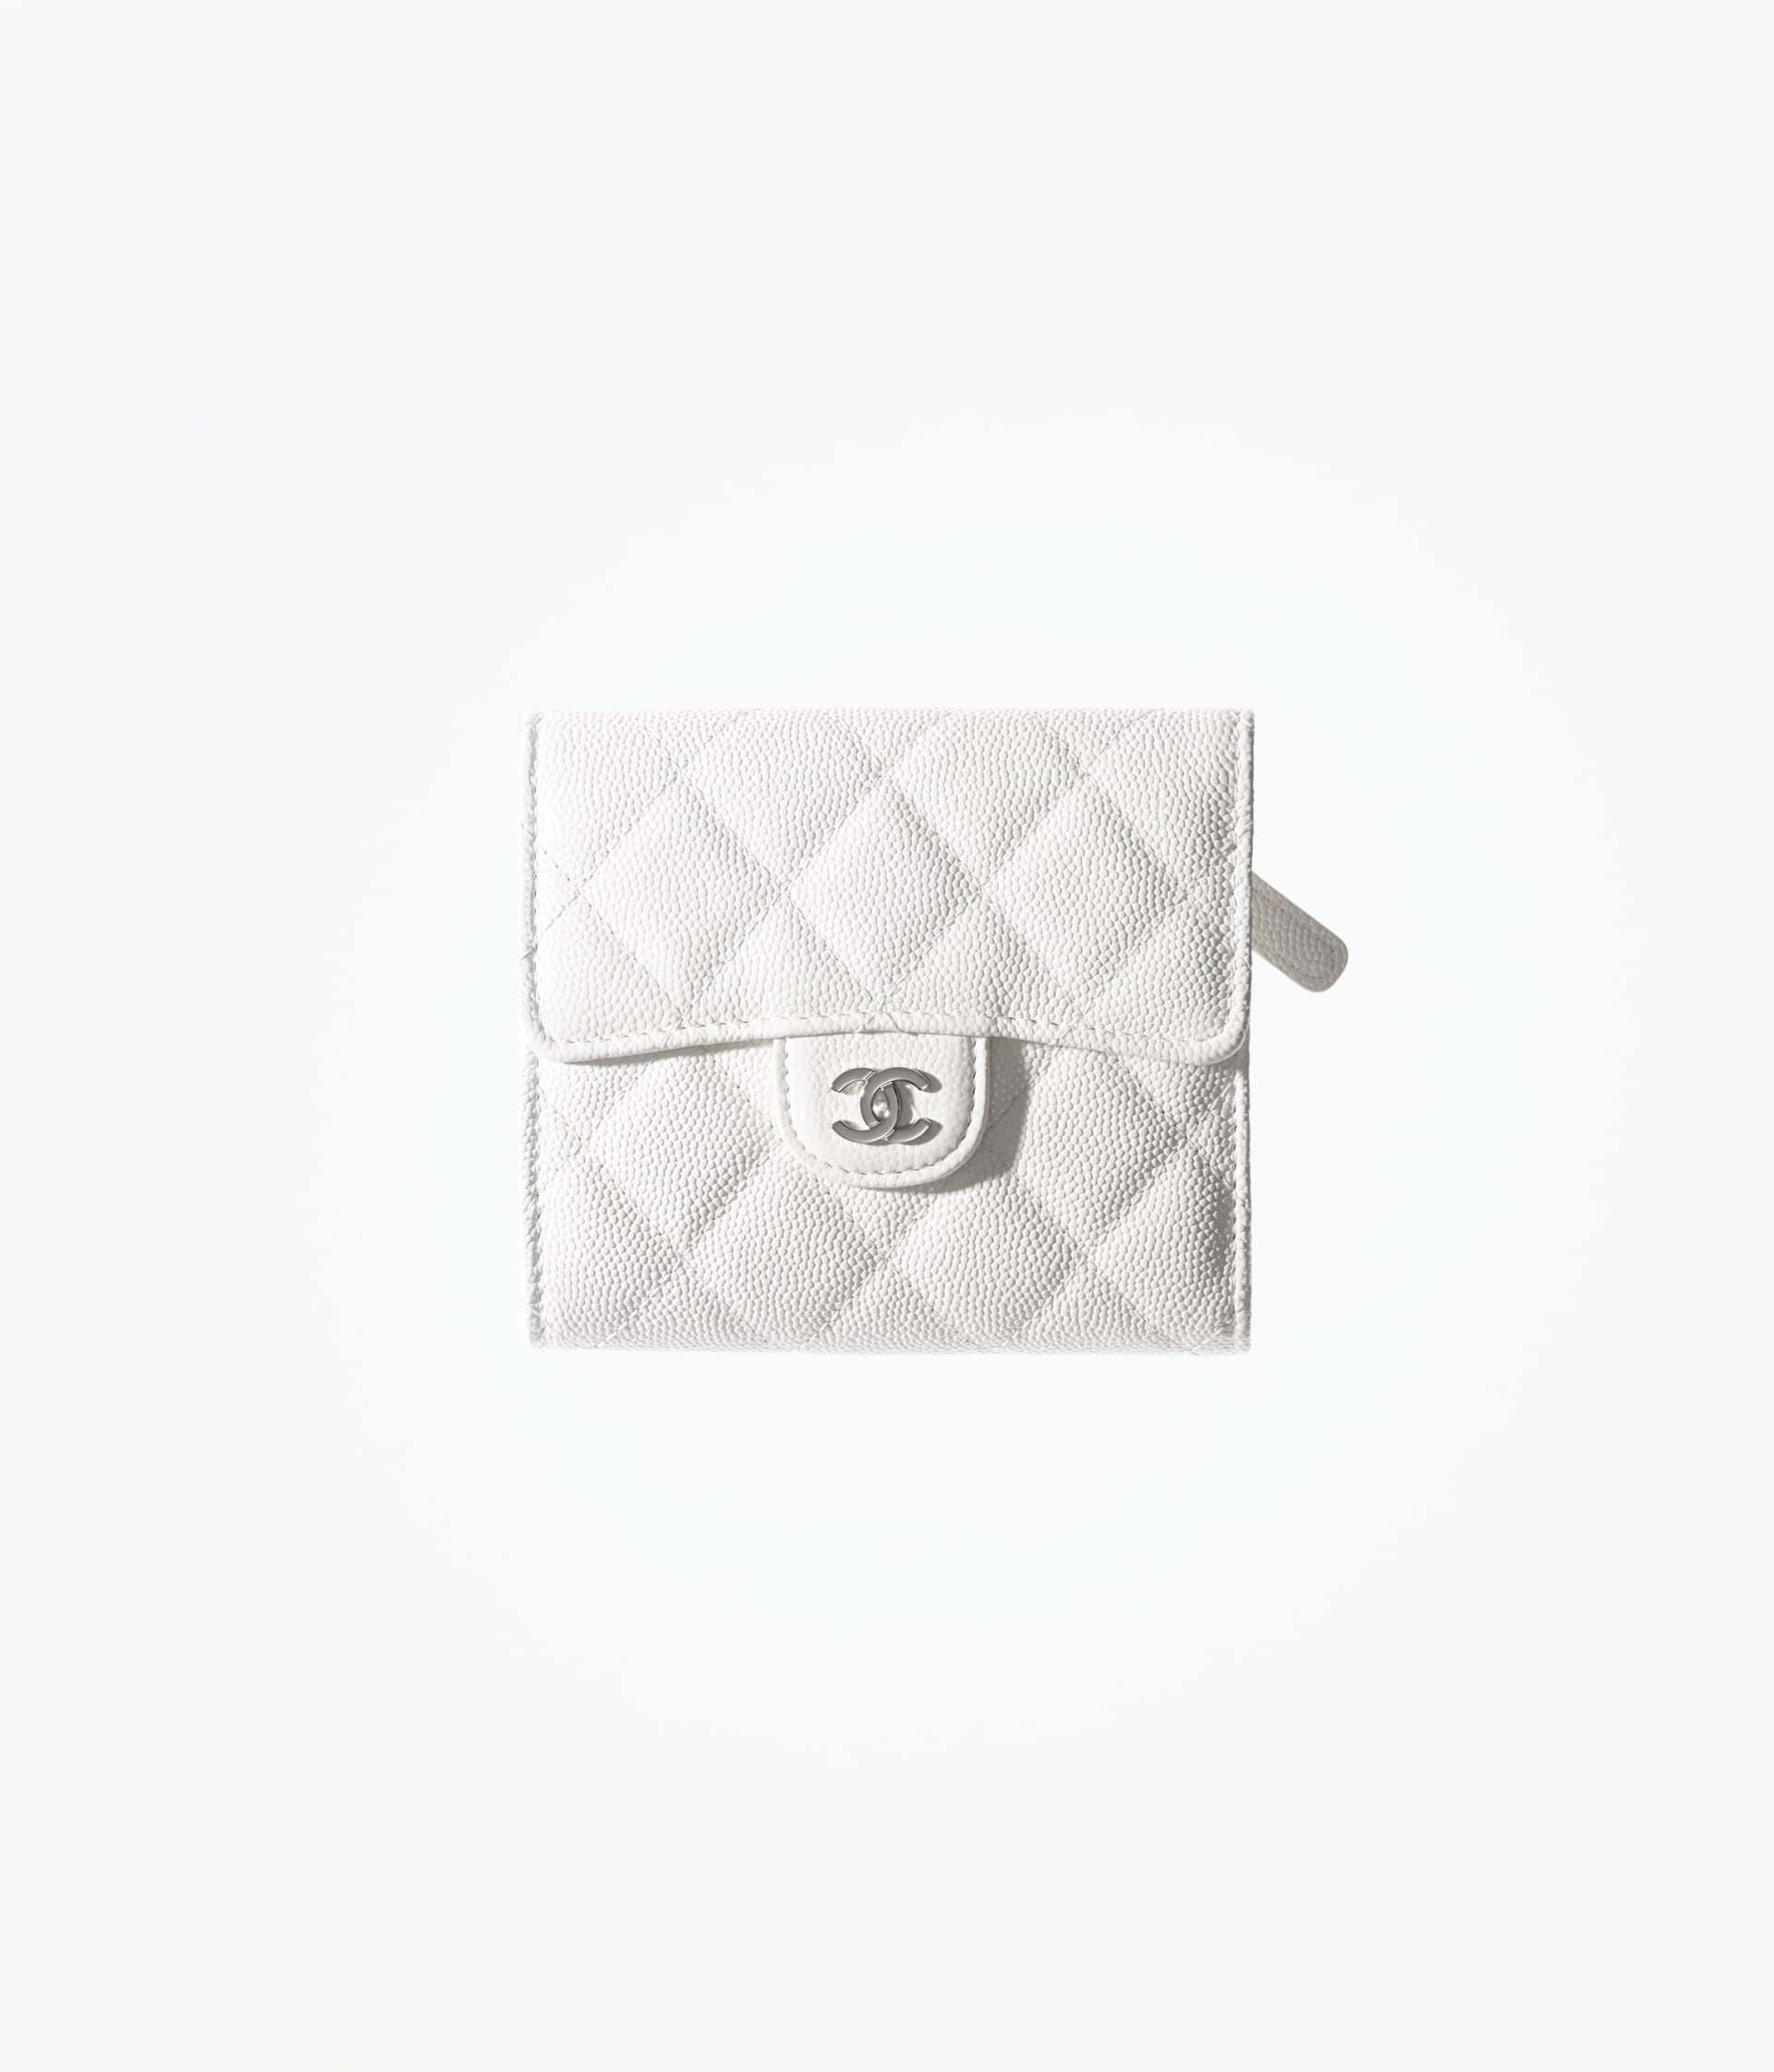 image 1 - Classic Small Flap Wallet - Grained Calfskin & Silver-Tone Metal - White